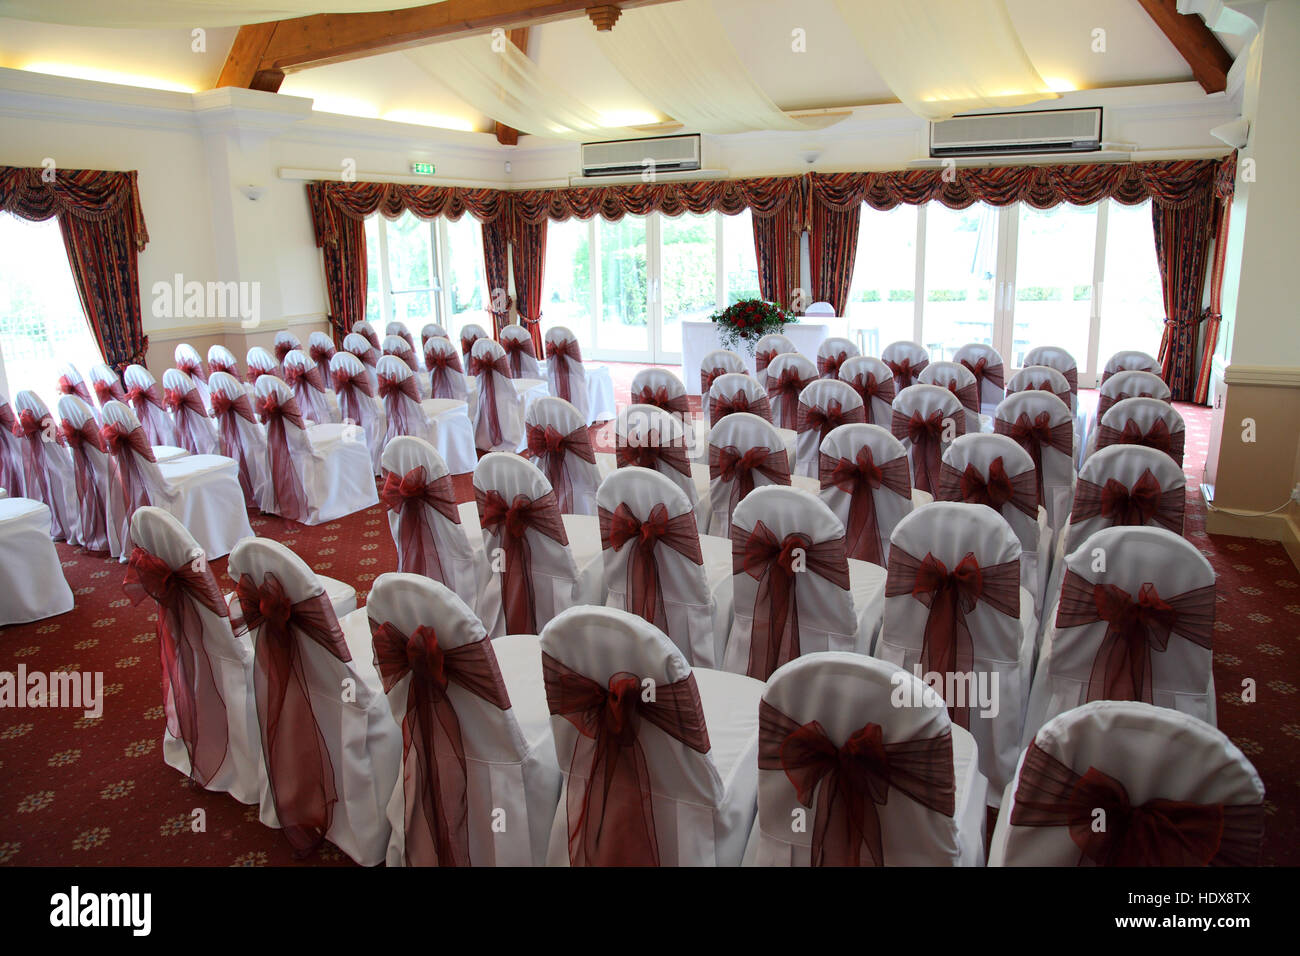 A room laid ready for a civil wedding ceremony, chairs with white covers, and tied with dark pink bows - Stock Image